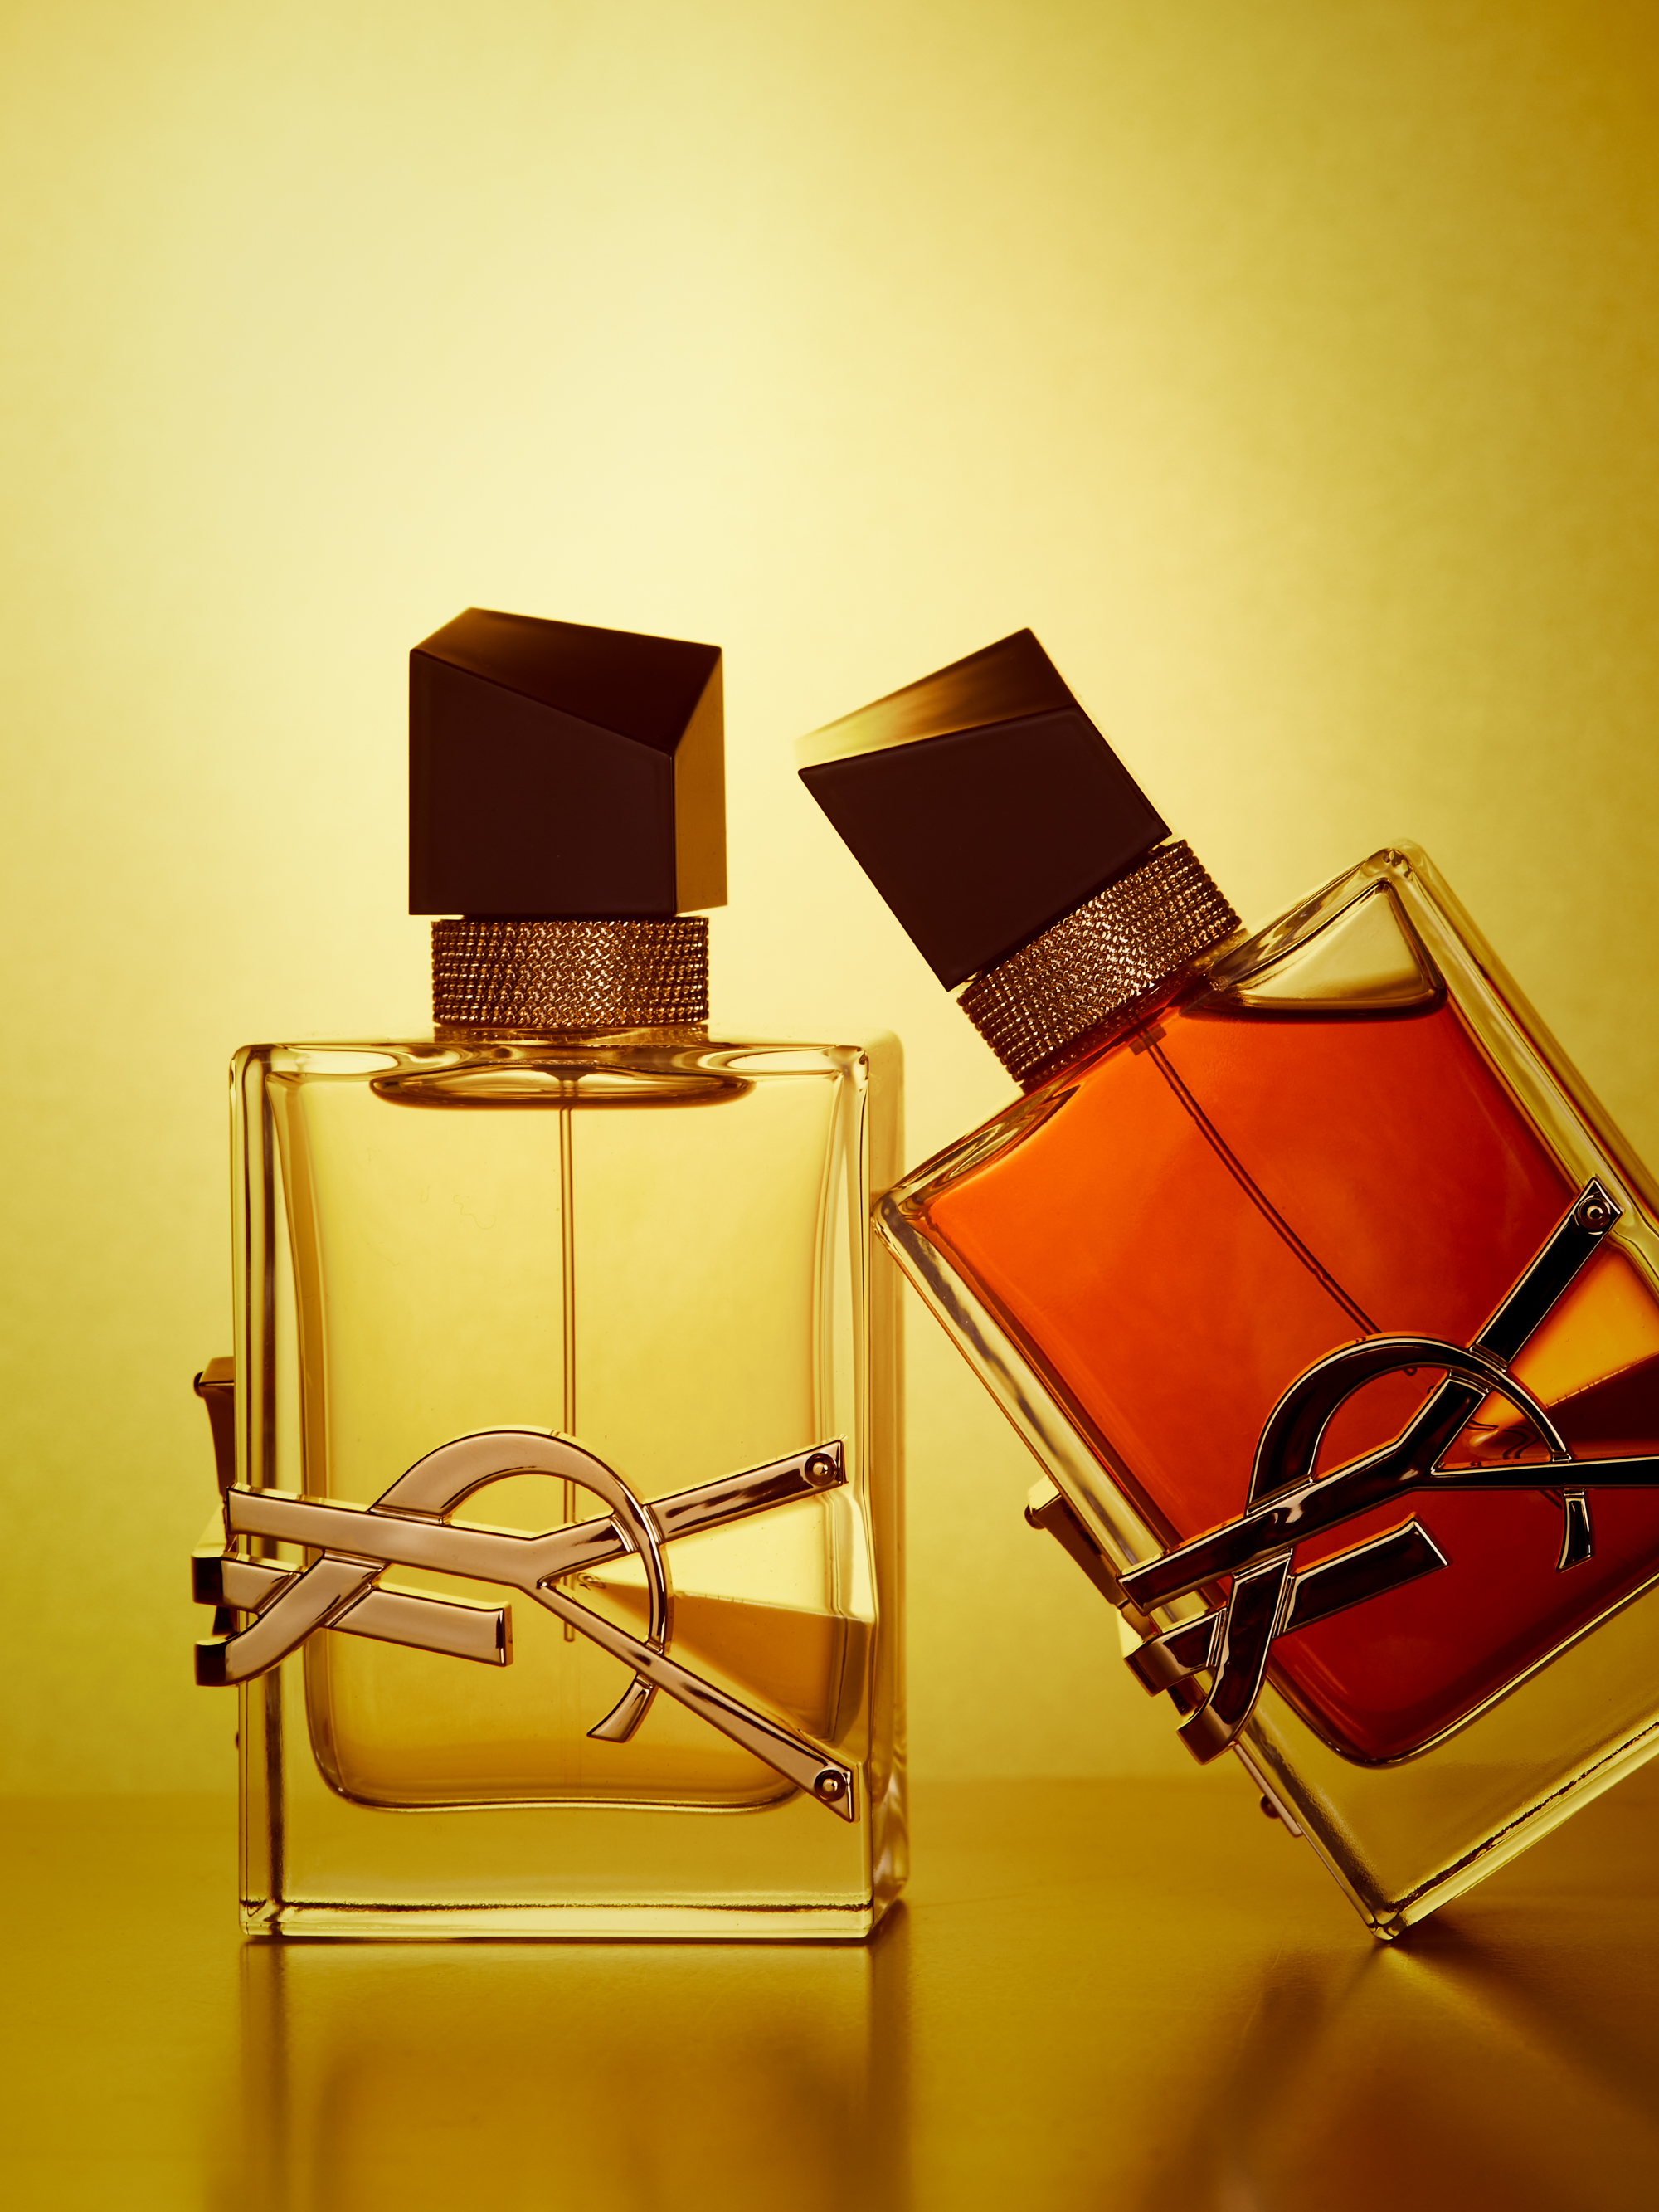 A perfume guide with new releases for fall/winter 2020. Featuring perfume notes from Giorgio Armani, Molton Brown, Yves Saint Laurent, Issey Miyake and Lancôme.